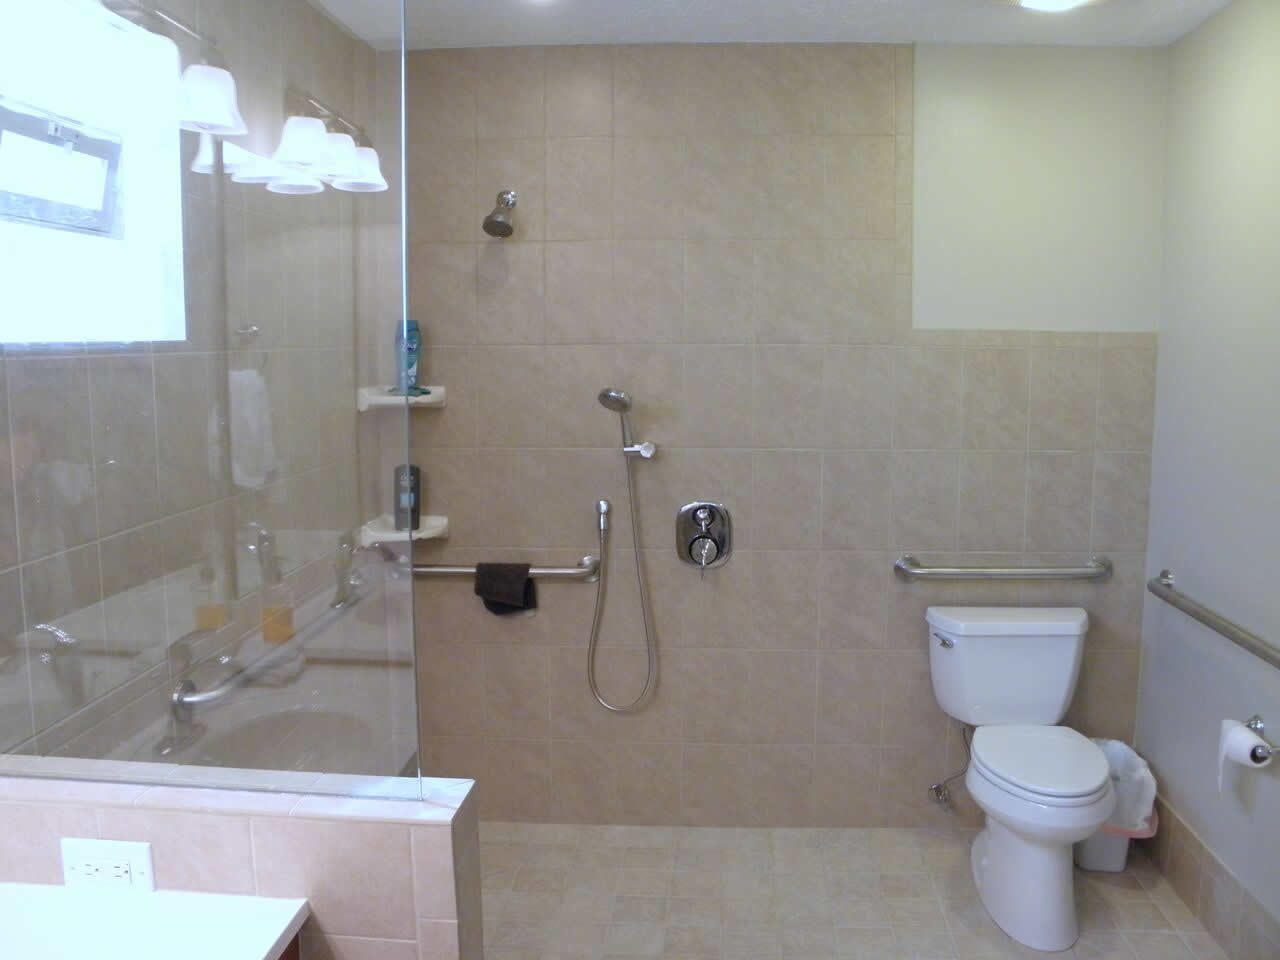 Handicap Showers Make Home Life Easier - Accessible Remodeling